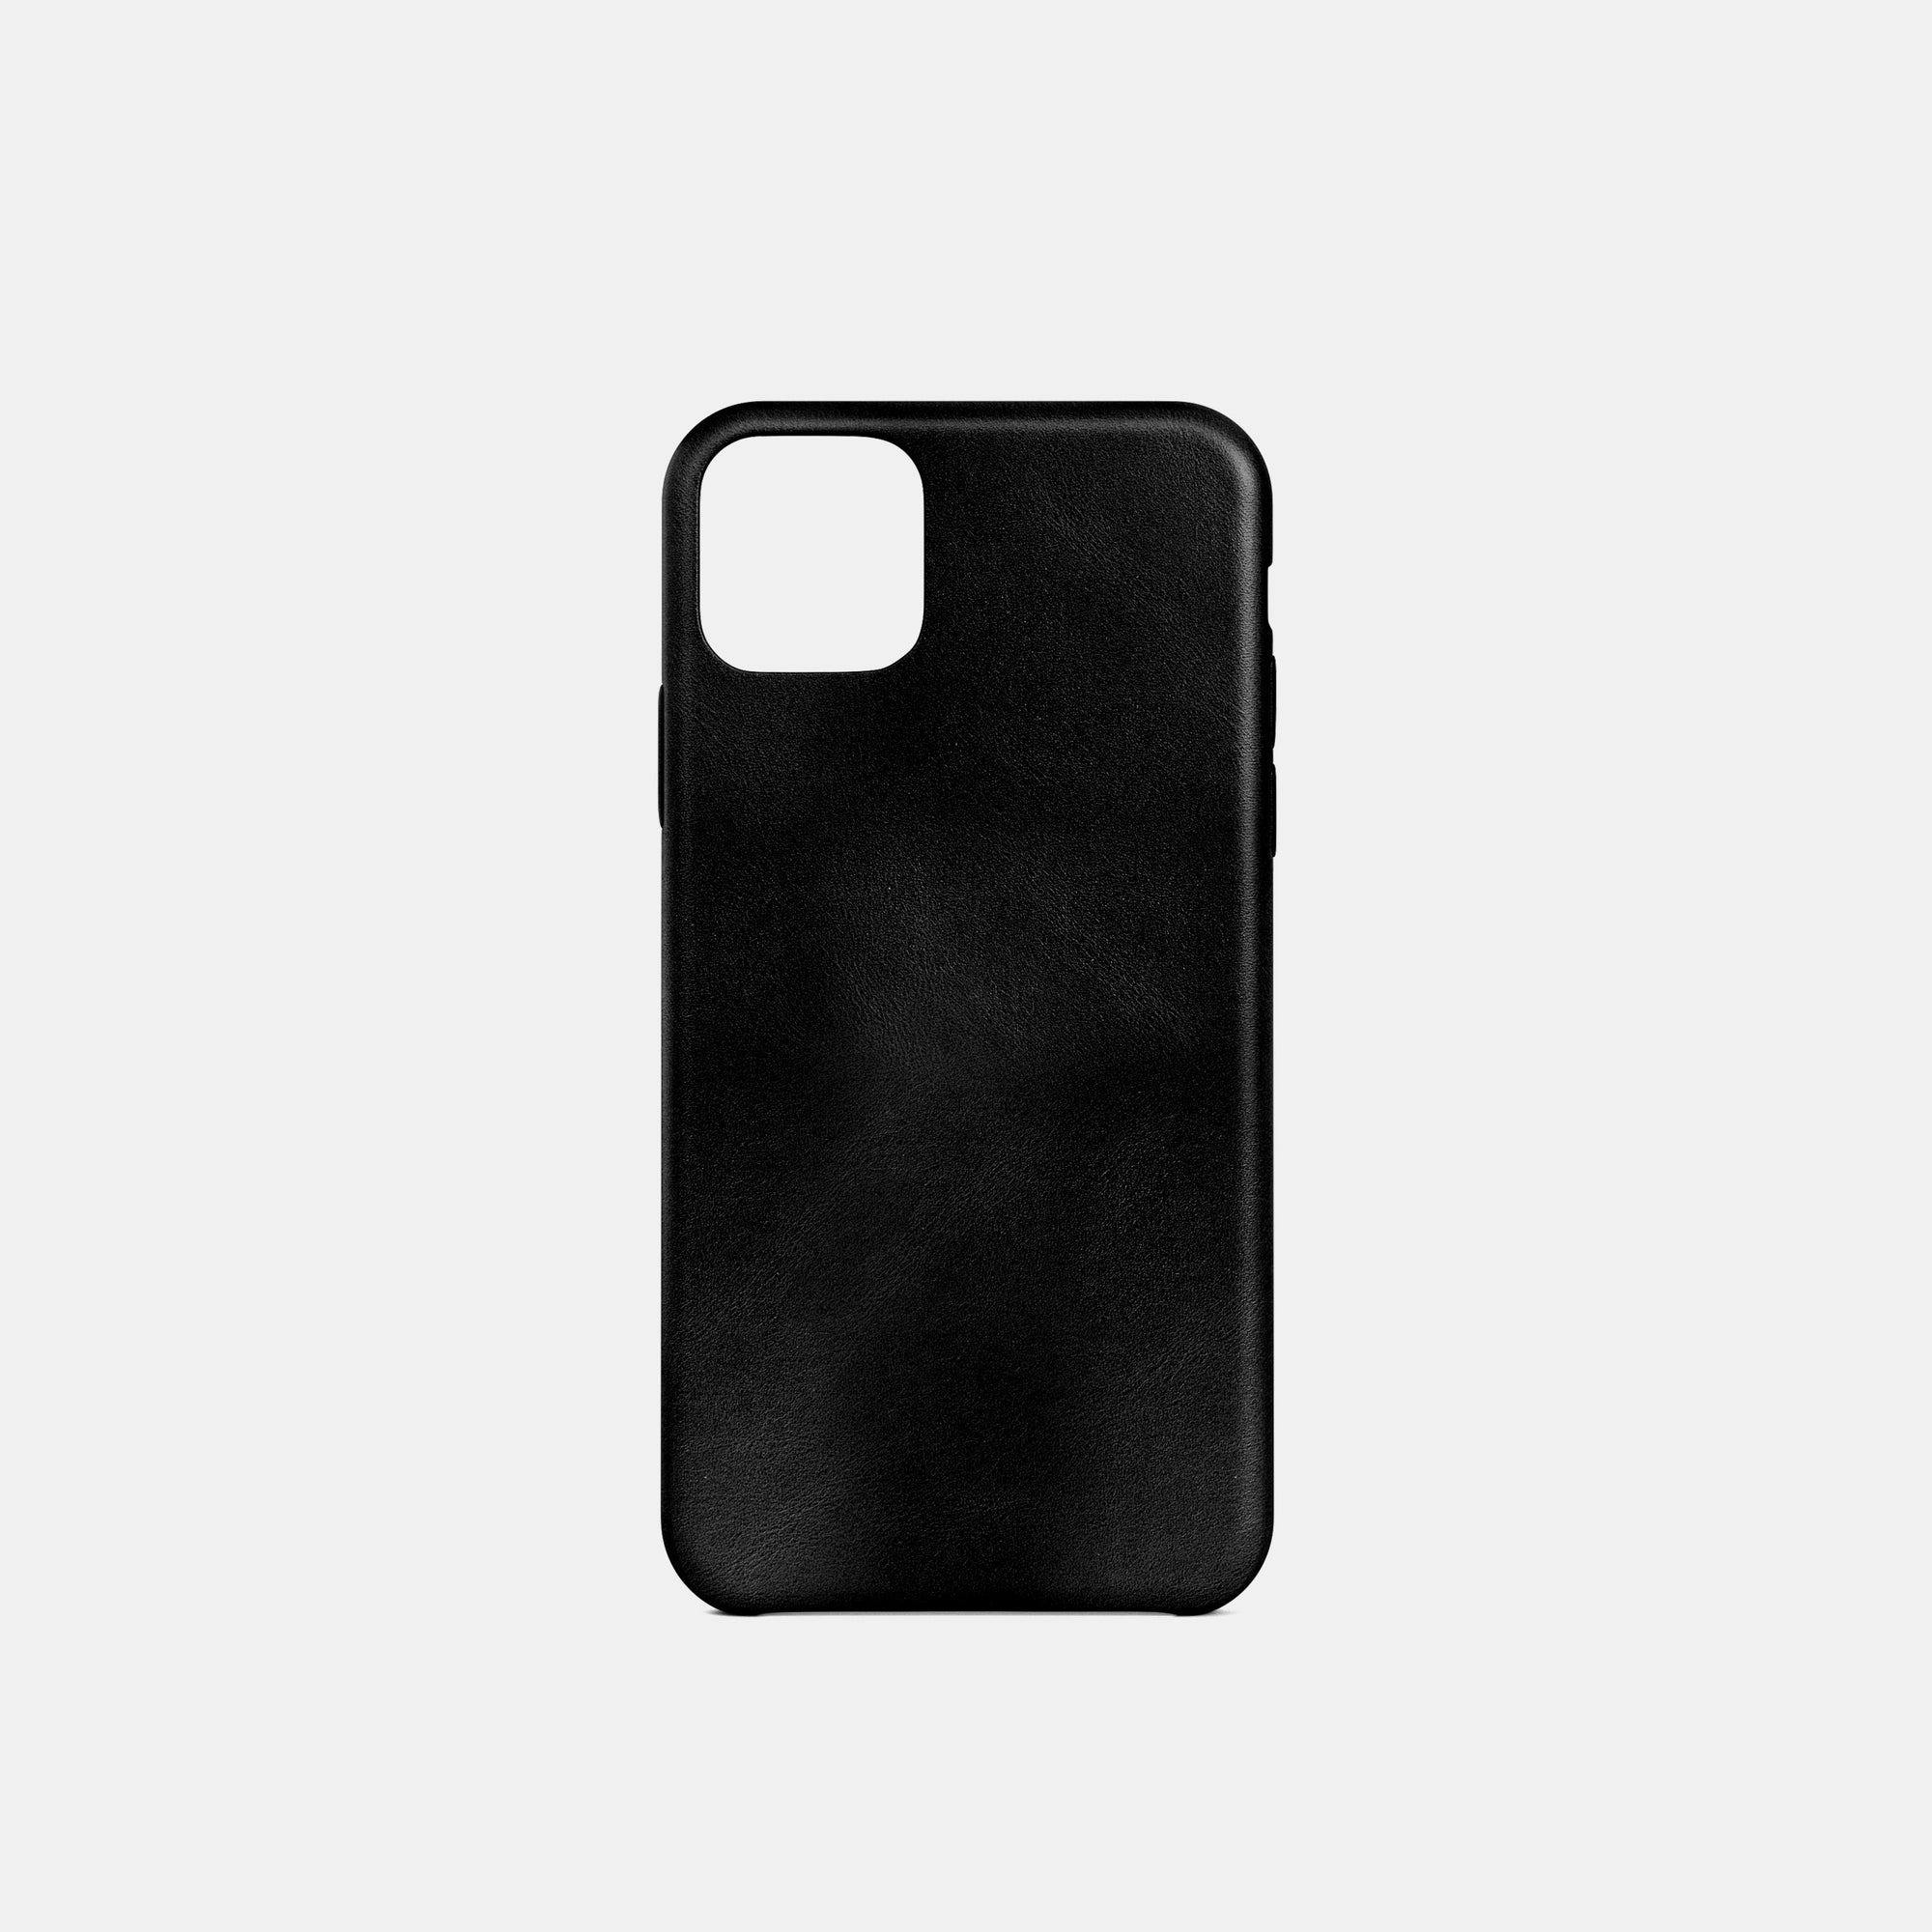 iPhone Leather Shell Case - Deep Black - RYAN London